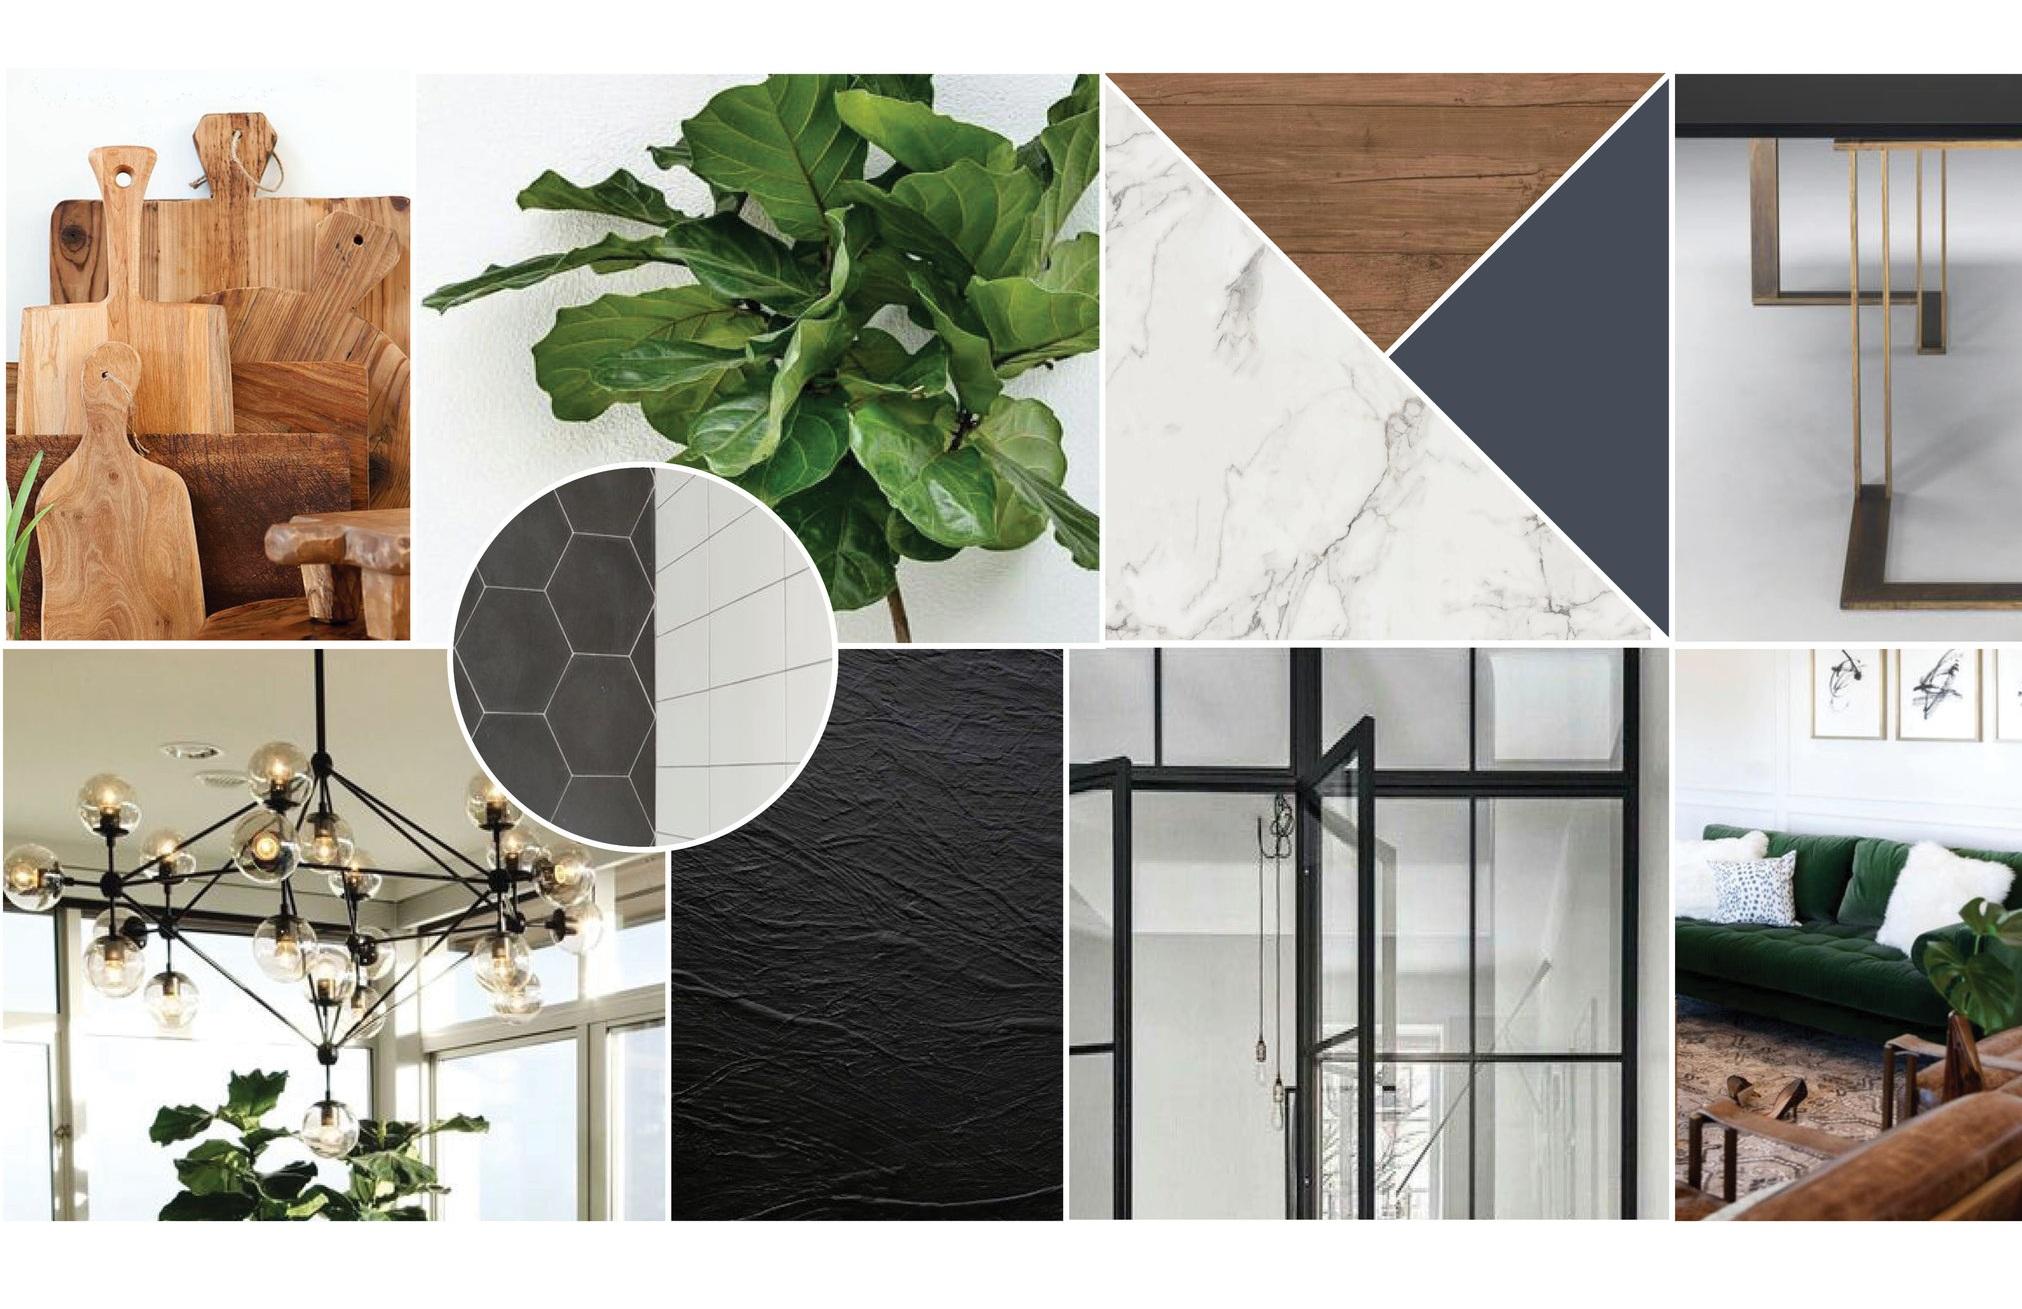 We always start each project with a moodboard to communicate the vision for the design before we get started. For this particular design, we pulled in rich accents with navy cabinets, black metal trim and marble textures throughout. We wanted this apartment to be modern yet warm and inviting which we achieved with sleek profiles and warm, textural materials.